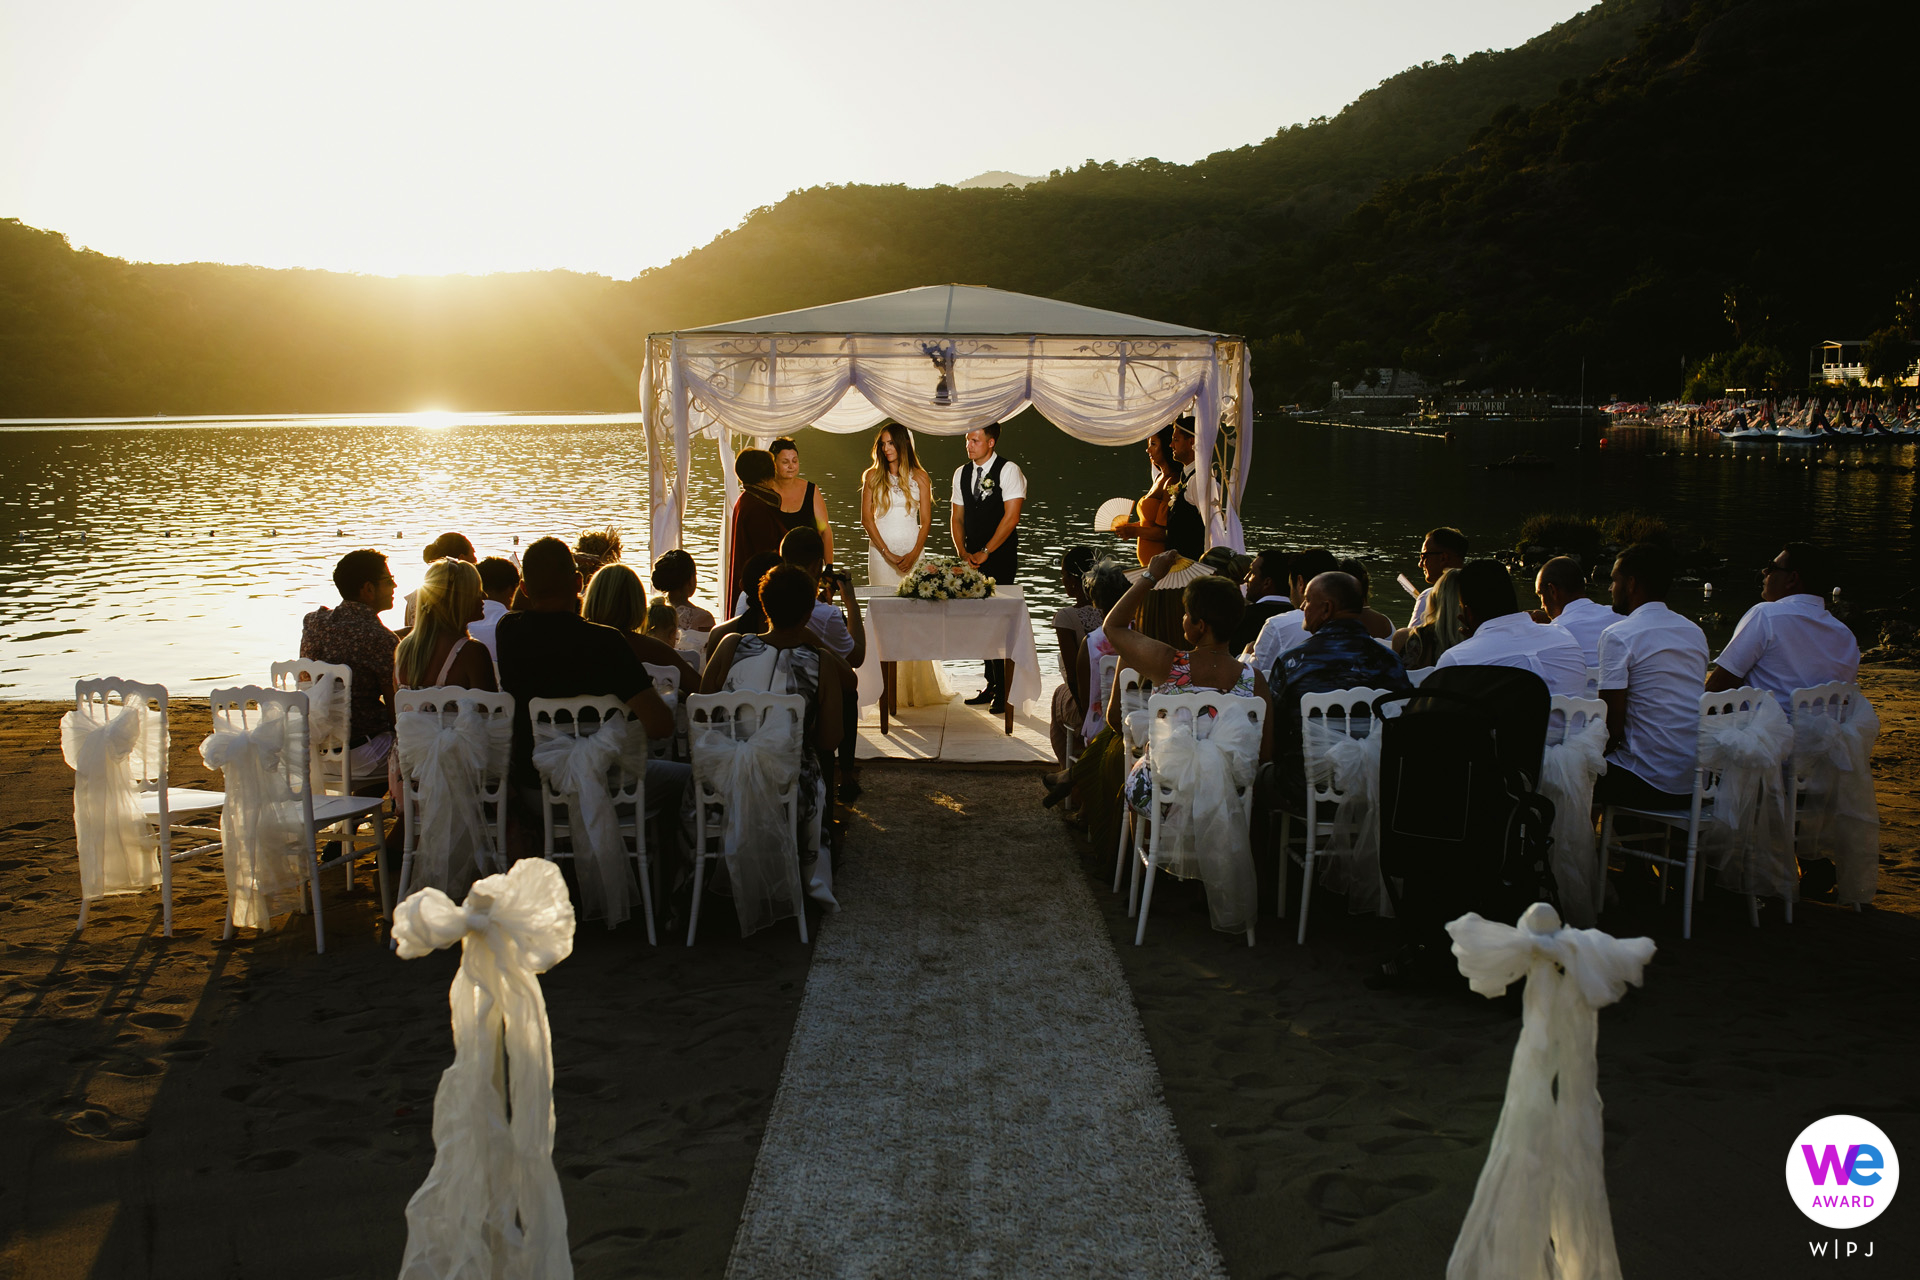 Sea Horse Beach Club, Oludeniz, Fethiye, Turkey Elopement Picture Story | The wedding solemnized on the beach at sunset was visually magnificent